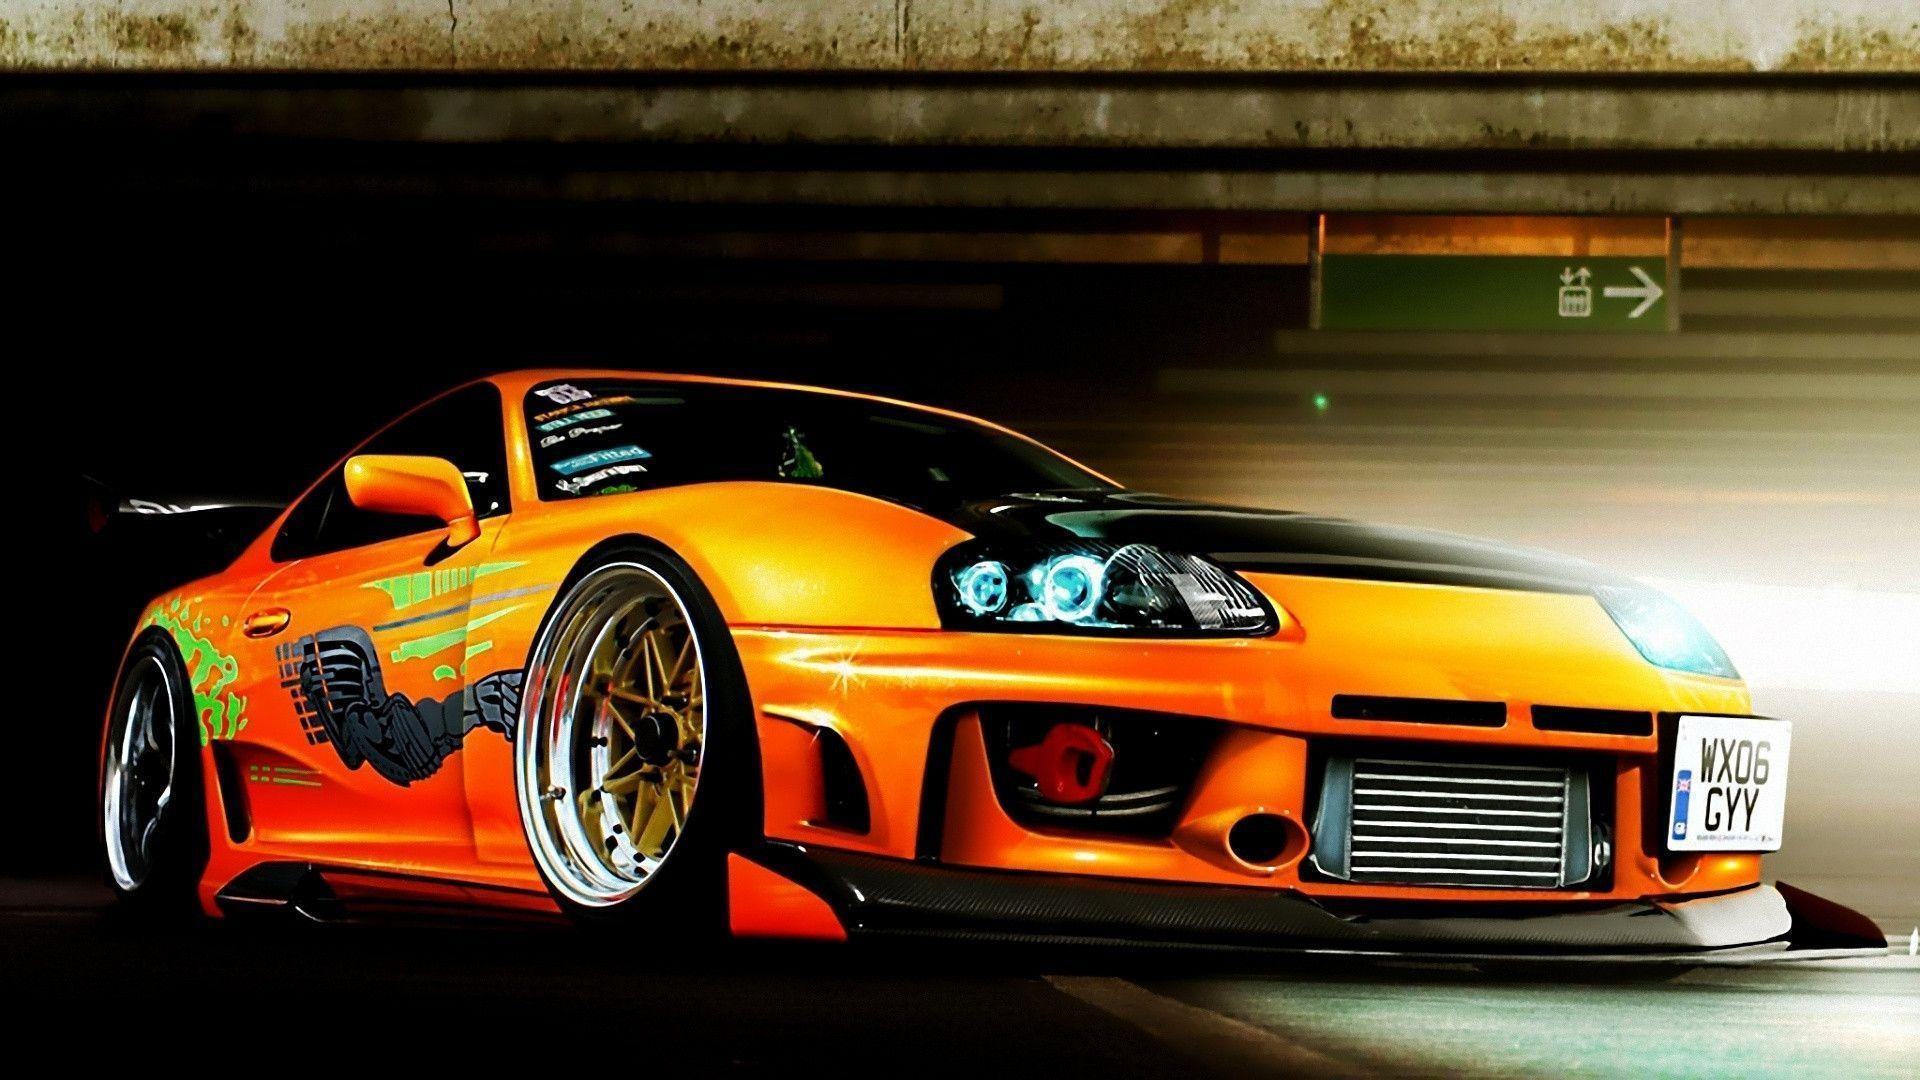 Toyota Supra 2015 Wallpapers Hd For Android Wallpapers